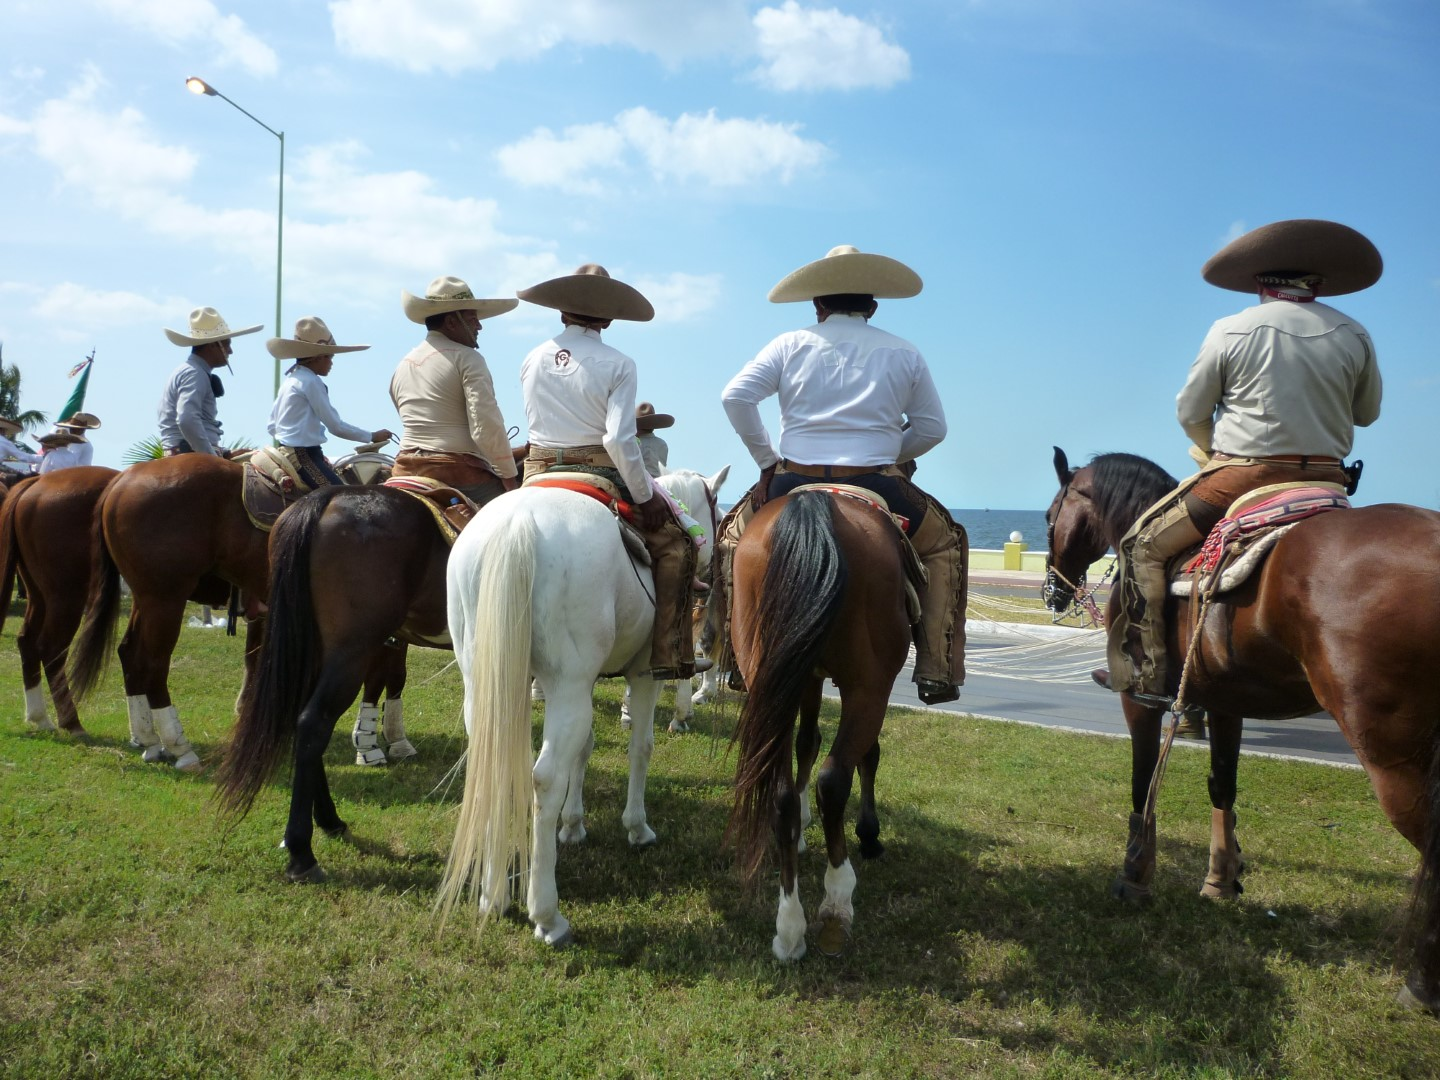 Men on horseback in Campeche